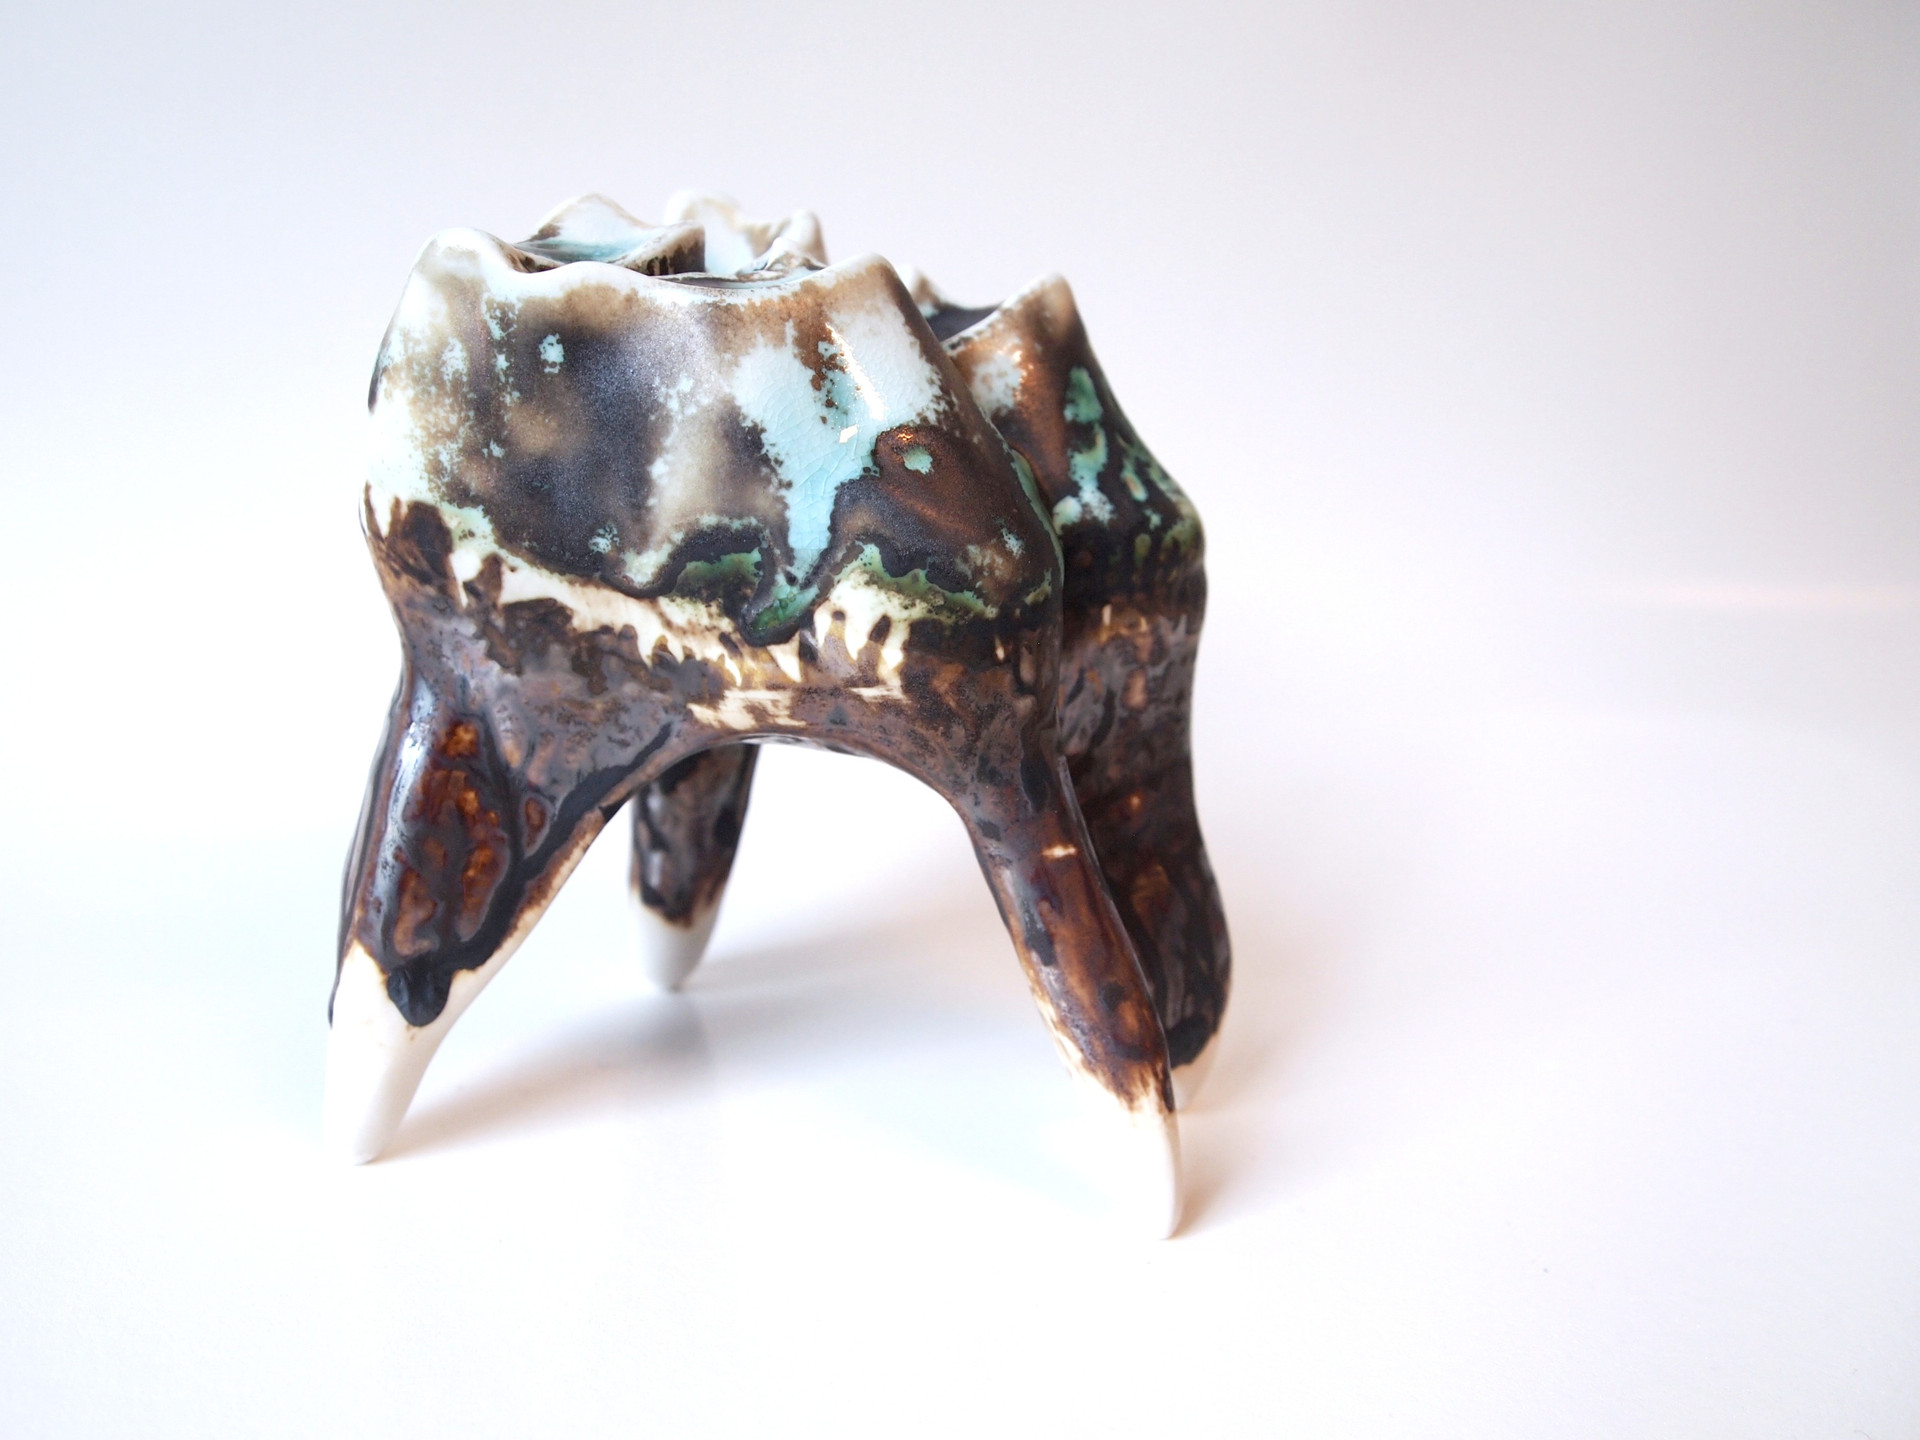 Slipcasted porcelain, oxidation, 2018.